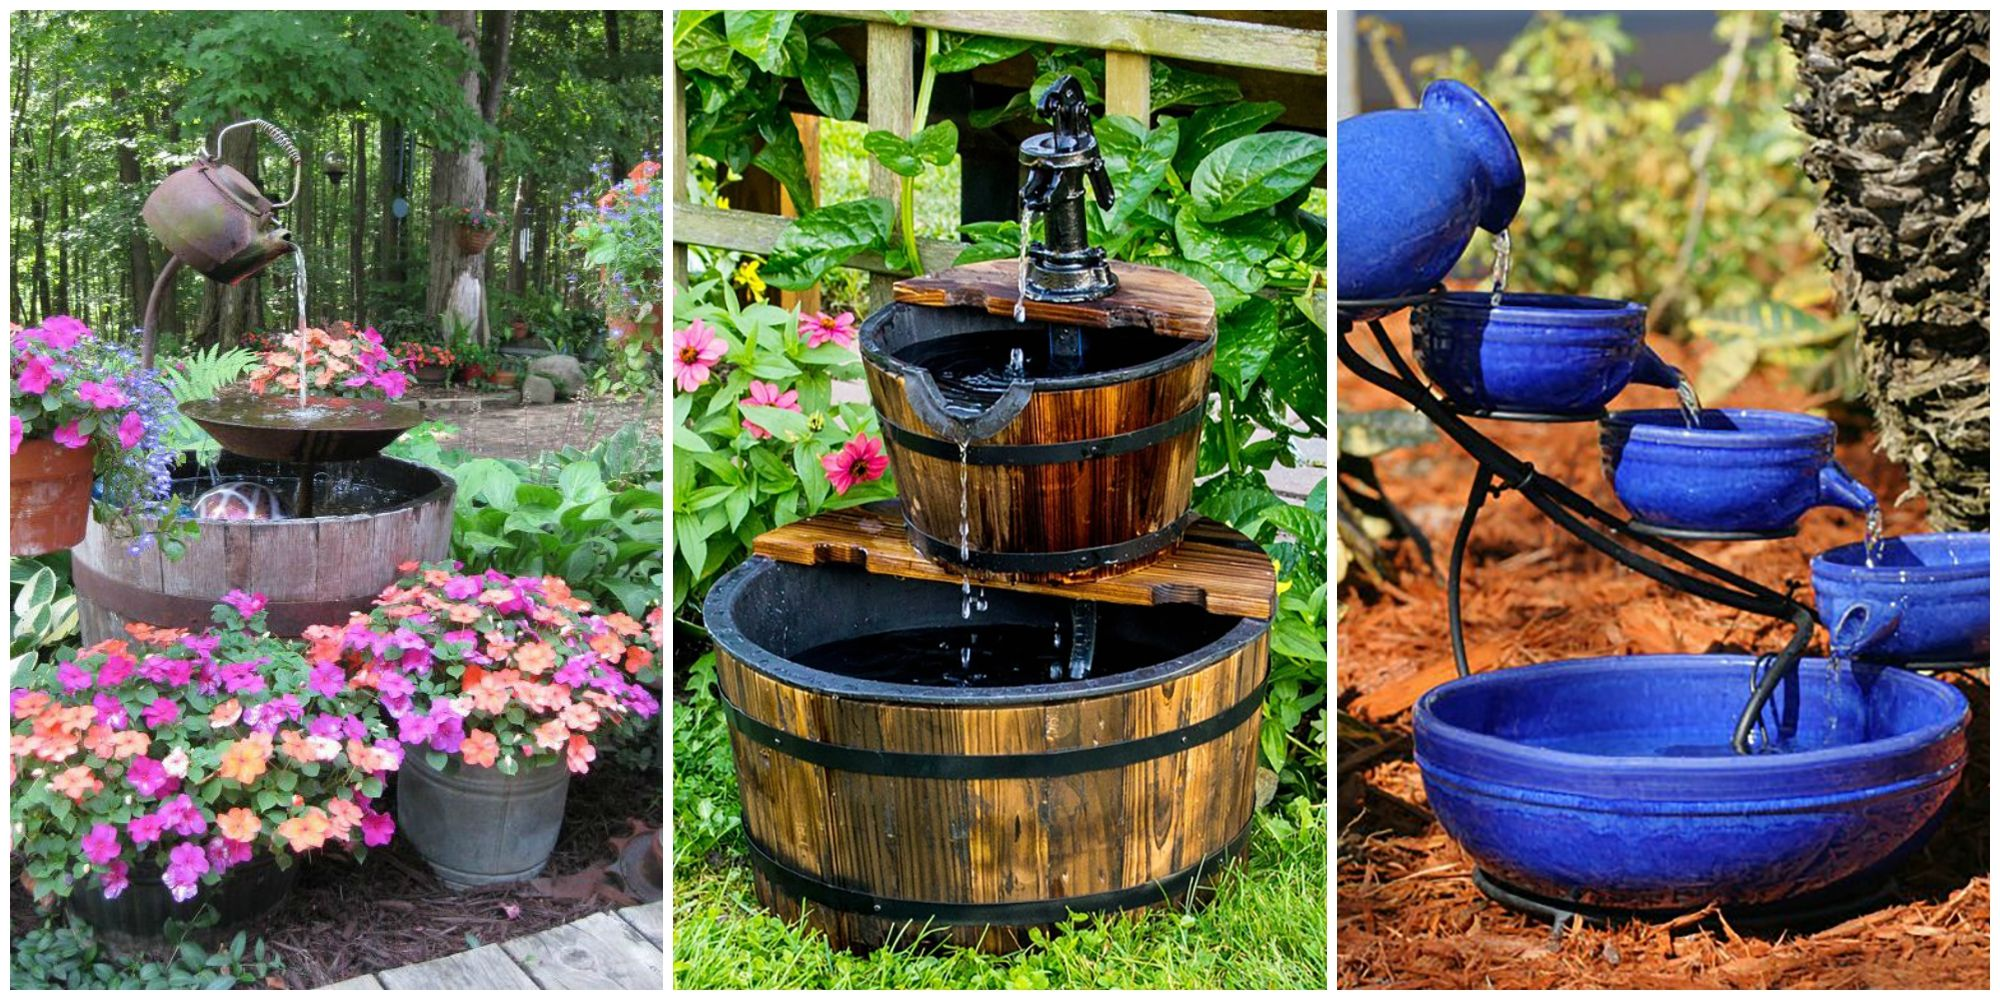 Backyard Items 18 outdoor fountain ideas - how to make a garden fountain for your